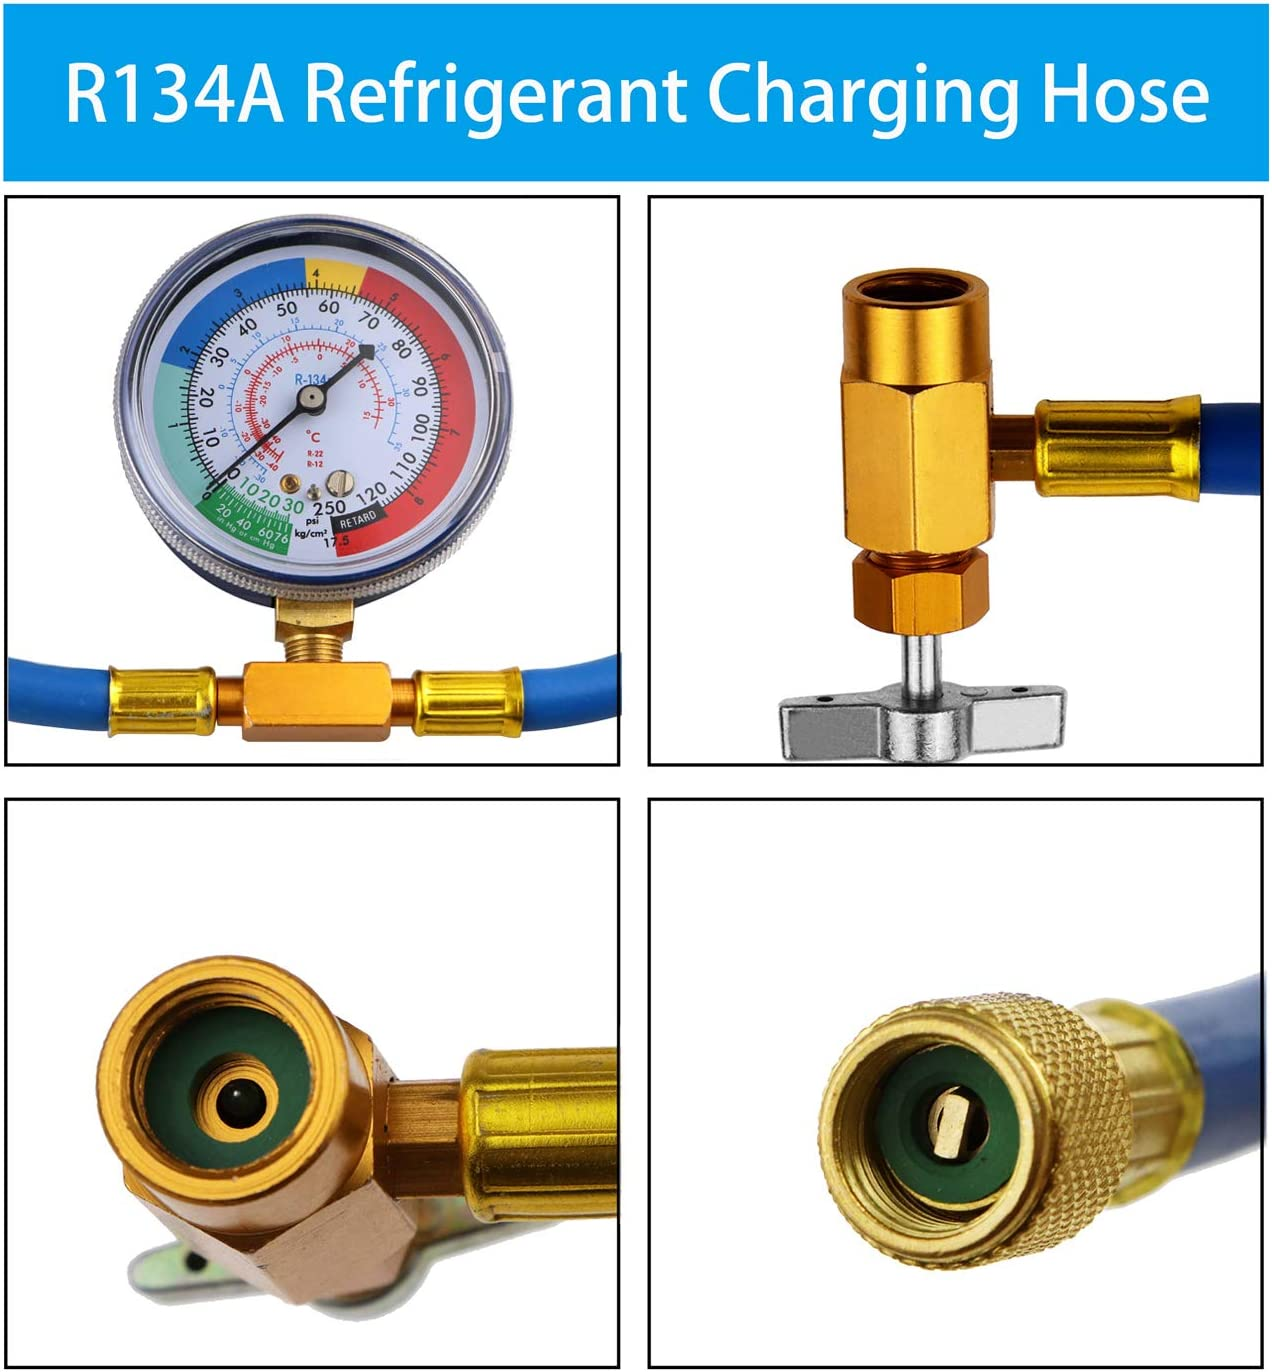 SOQAL 59 R134a Charging Hose to Refrigerator with Gauge,Refrigerant Recharger Hose,with R12 ro R134a Quick Adapter /& BPV31 Piercing Valve